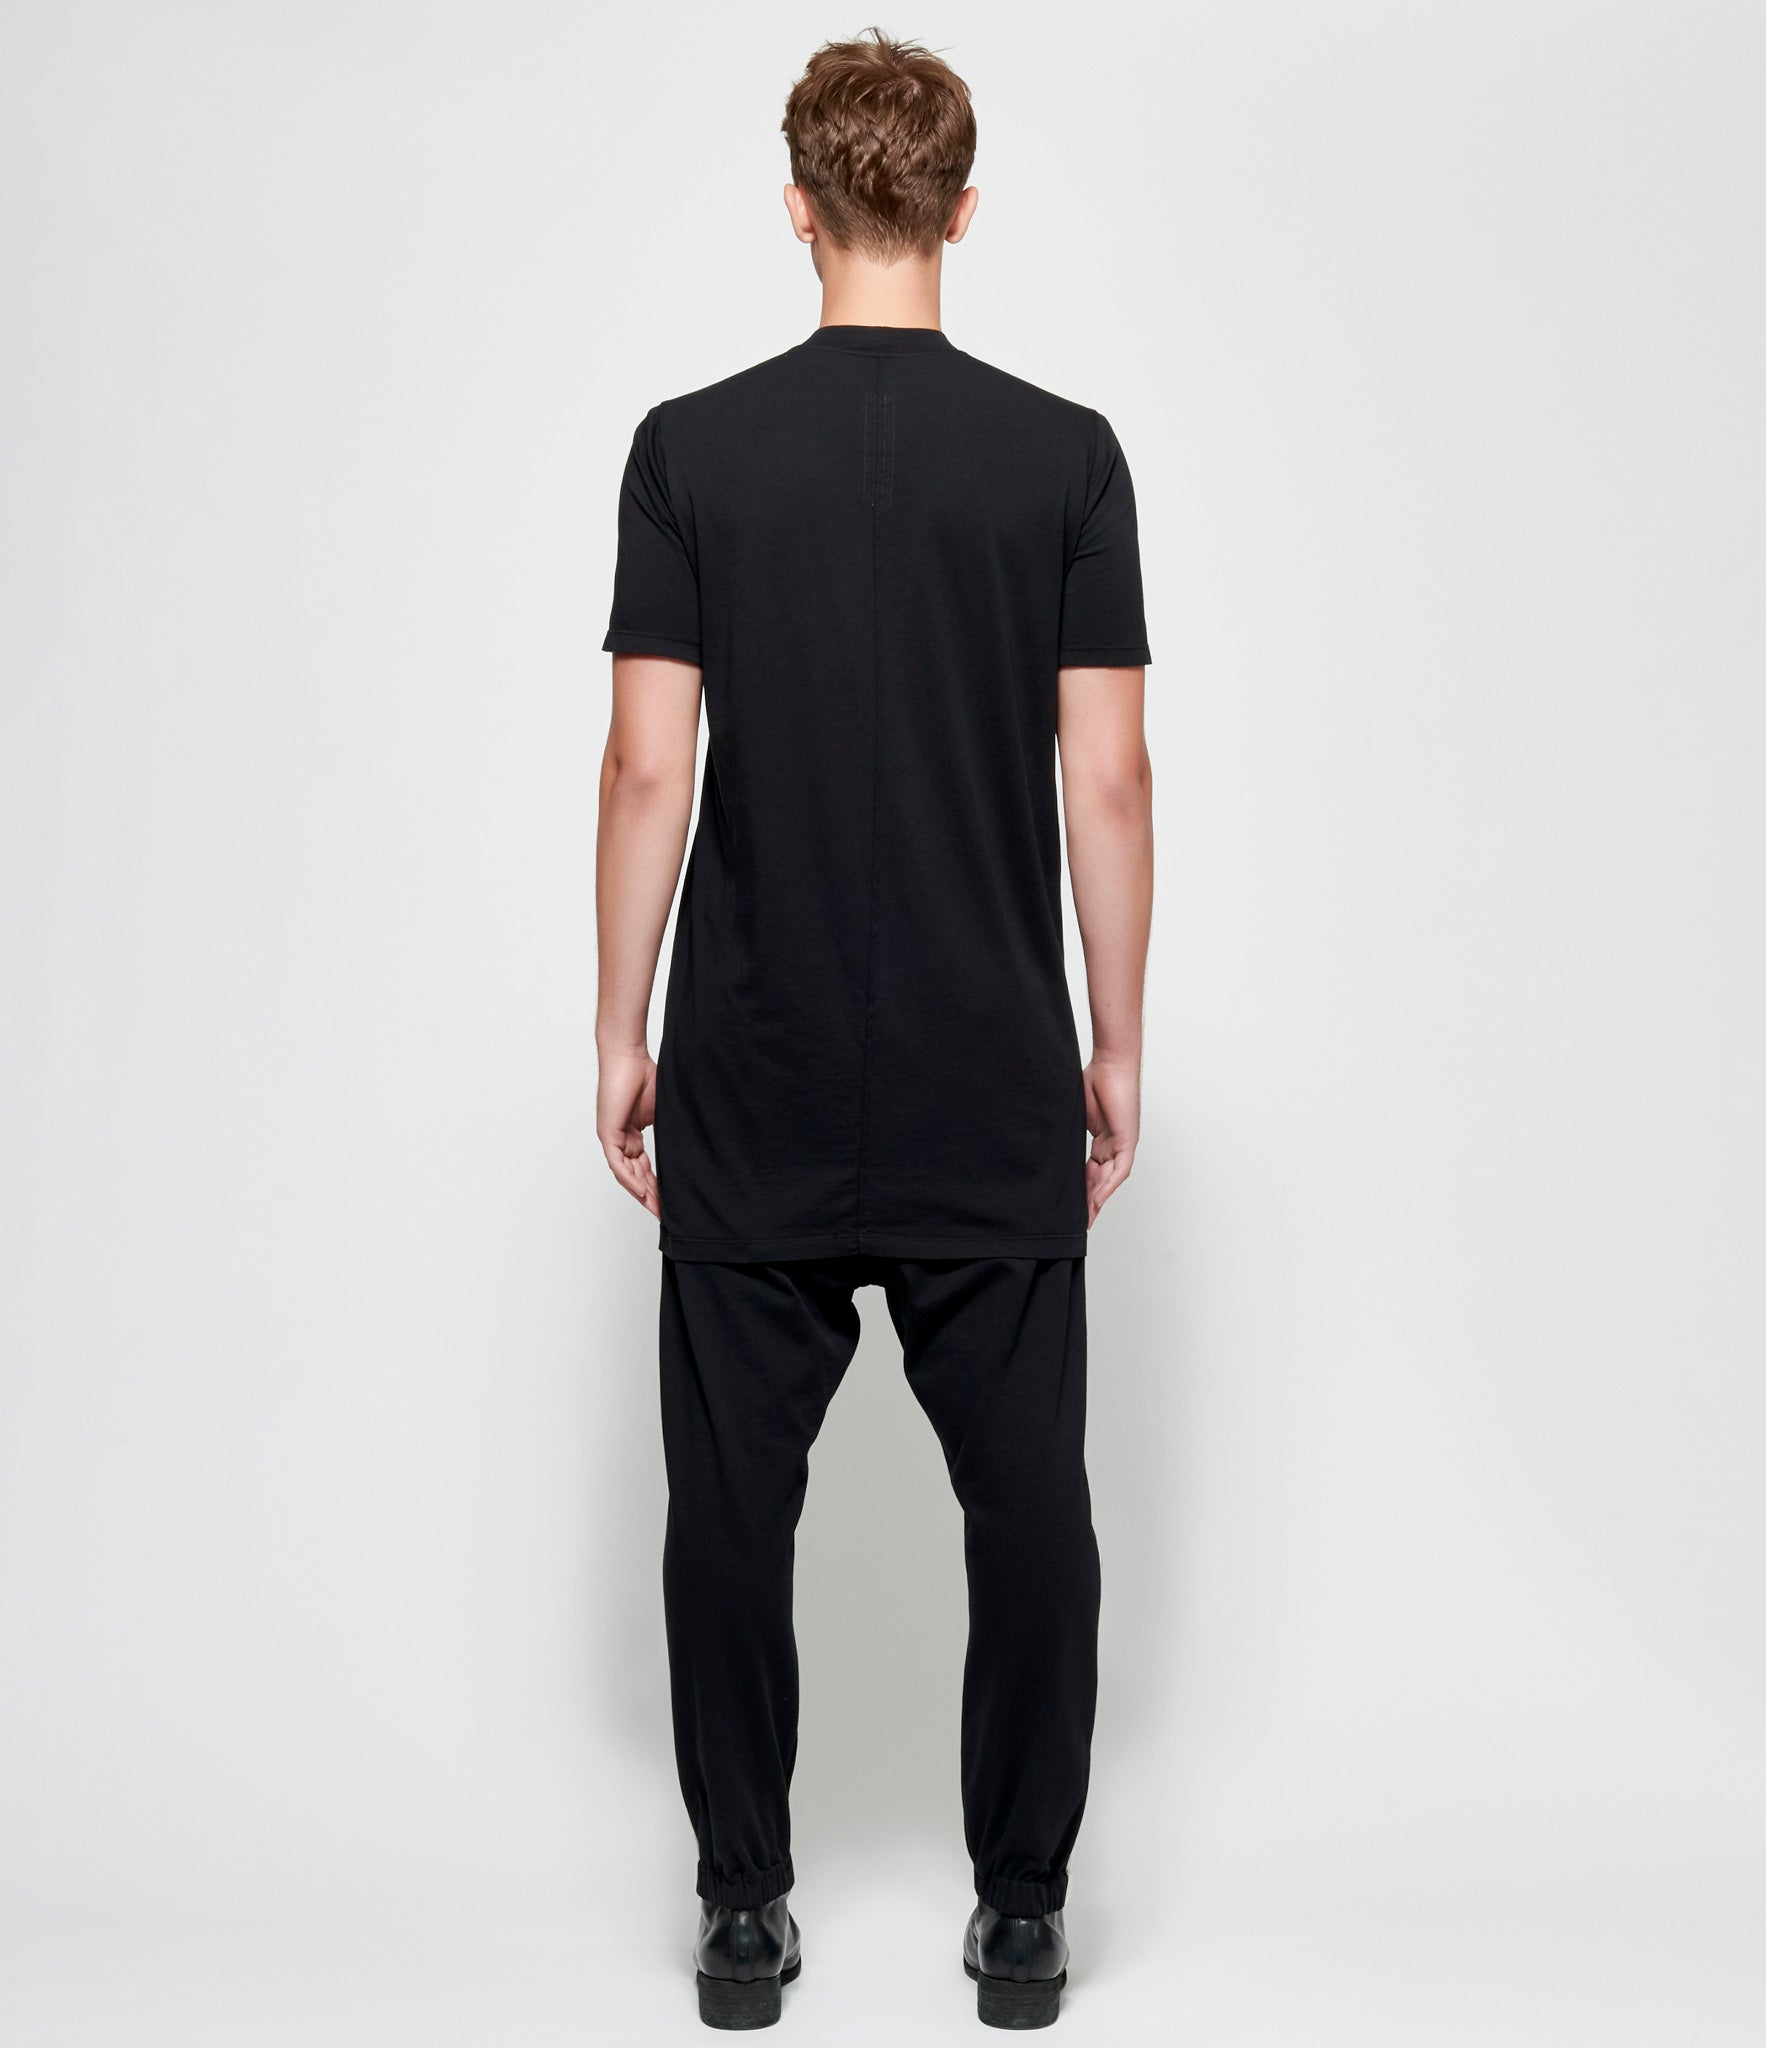 Rick Owens Level T-Shirt